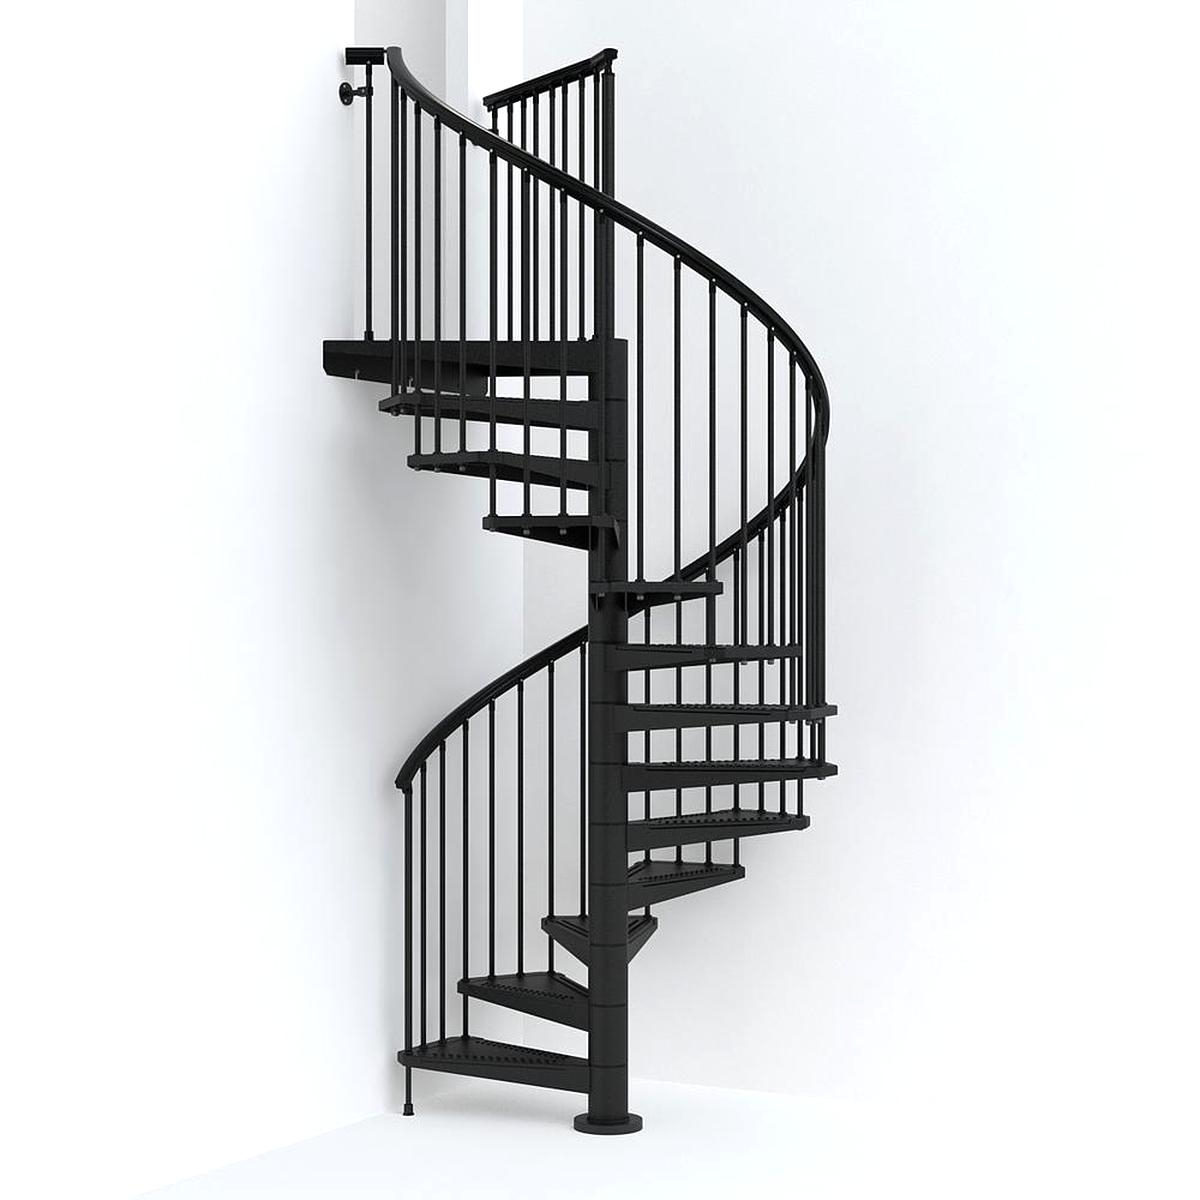 Spiral Staircase For Sale Only 2 Left At 65 | Wooden Spiral Staircase For Sale | 3 Floor | Twist | Wrought Iron | 36 Inch Diameter | Free Standing